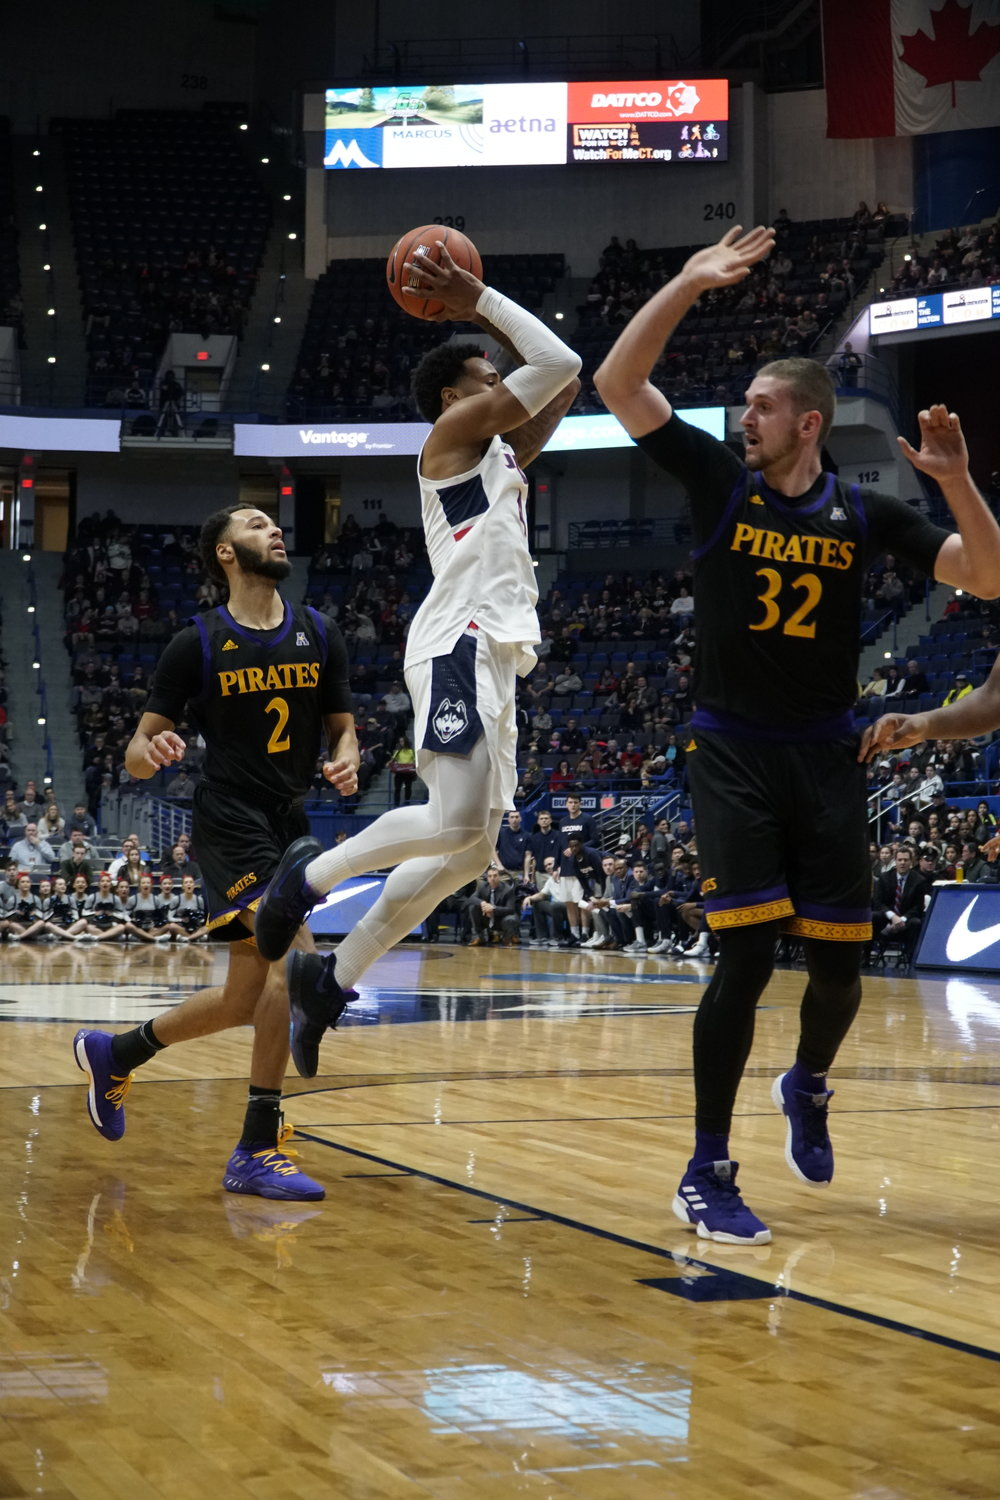 The Huskies take home another win against ECU 76-52, with Josh Carlton (25) leading the team with 20 points and 16 rebounds. Their next home game is on 2/14 against University of Houston. (Photo by Eric Wang/The Daily Campus)